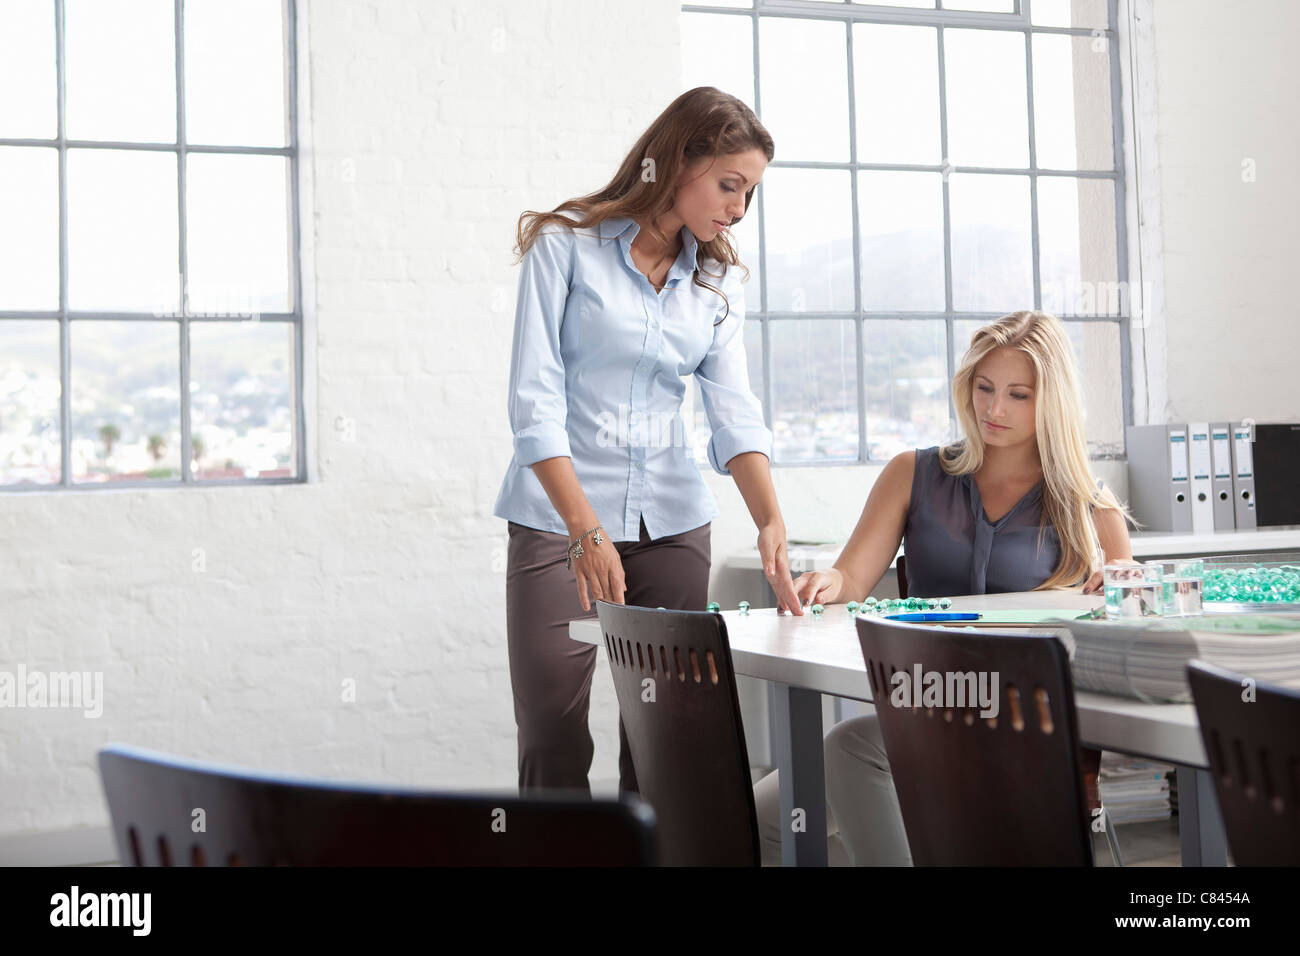 Businesswomen working with glass beads - Stock Image